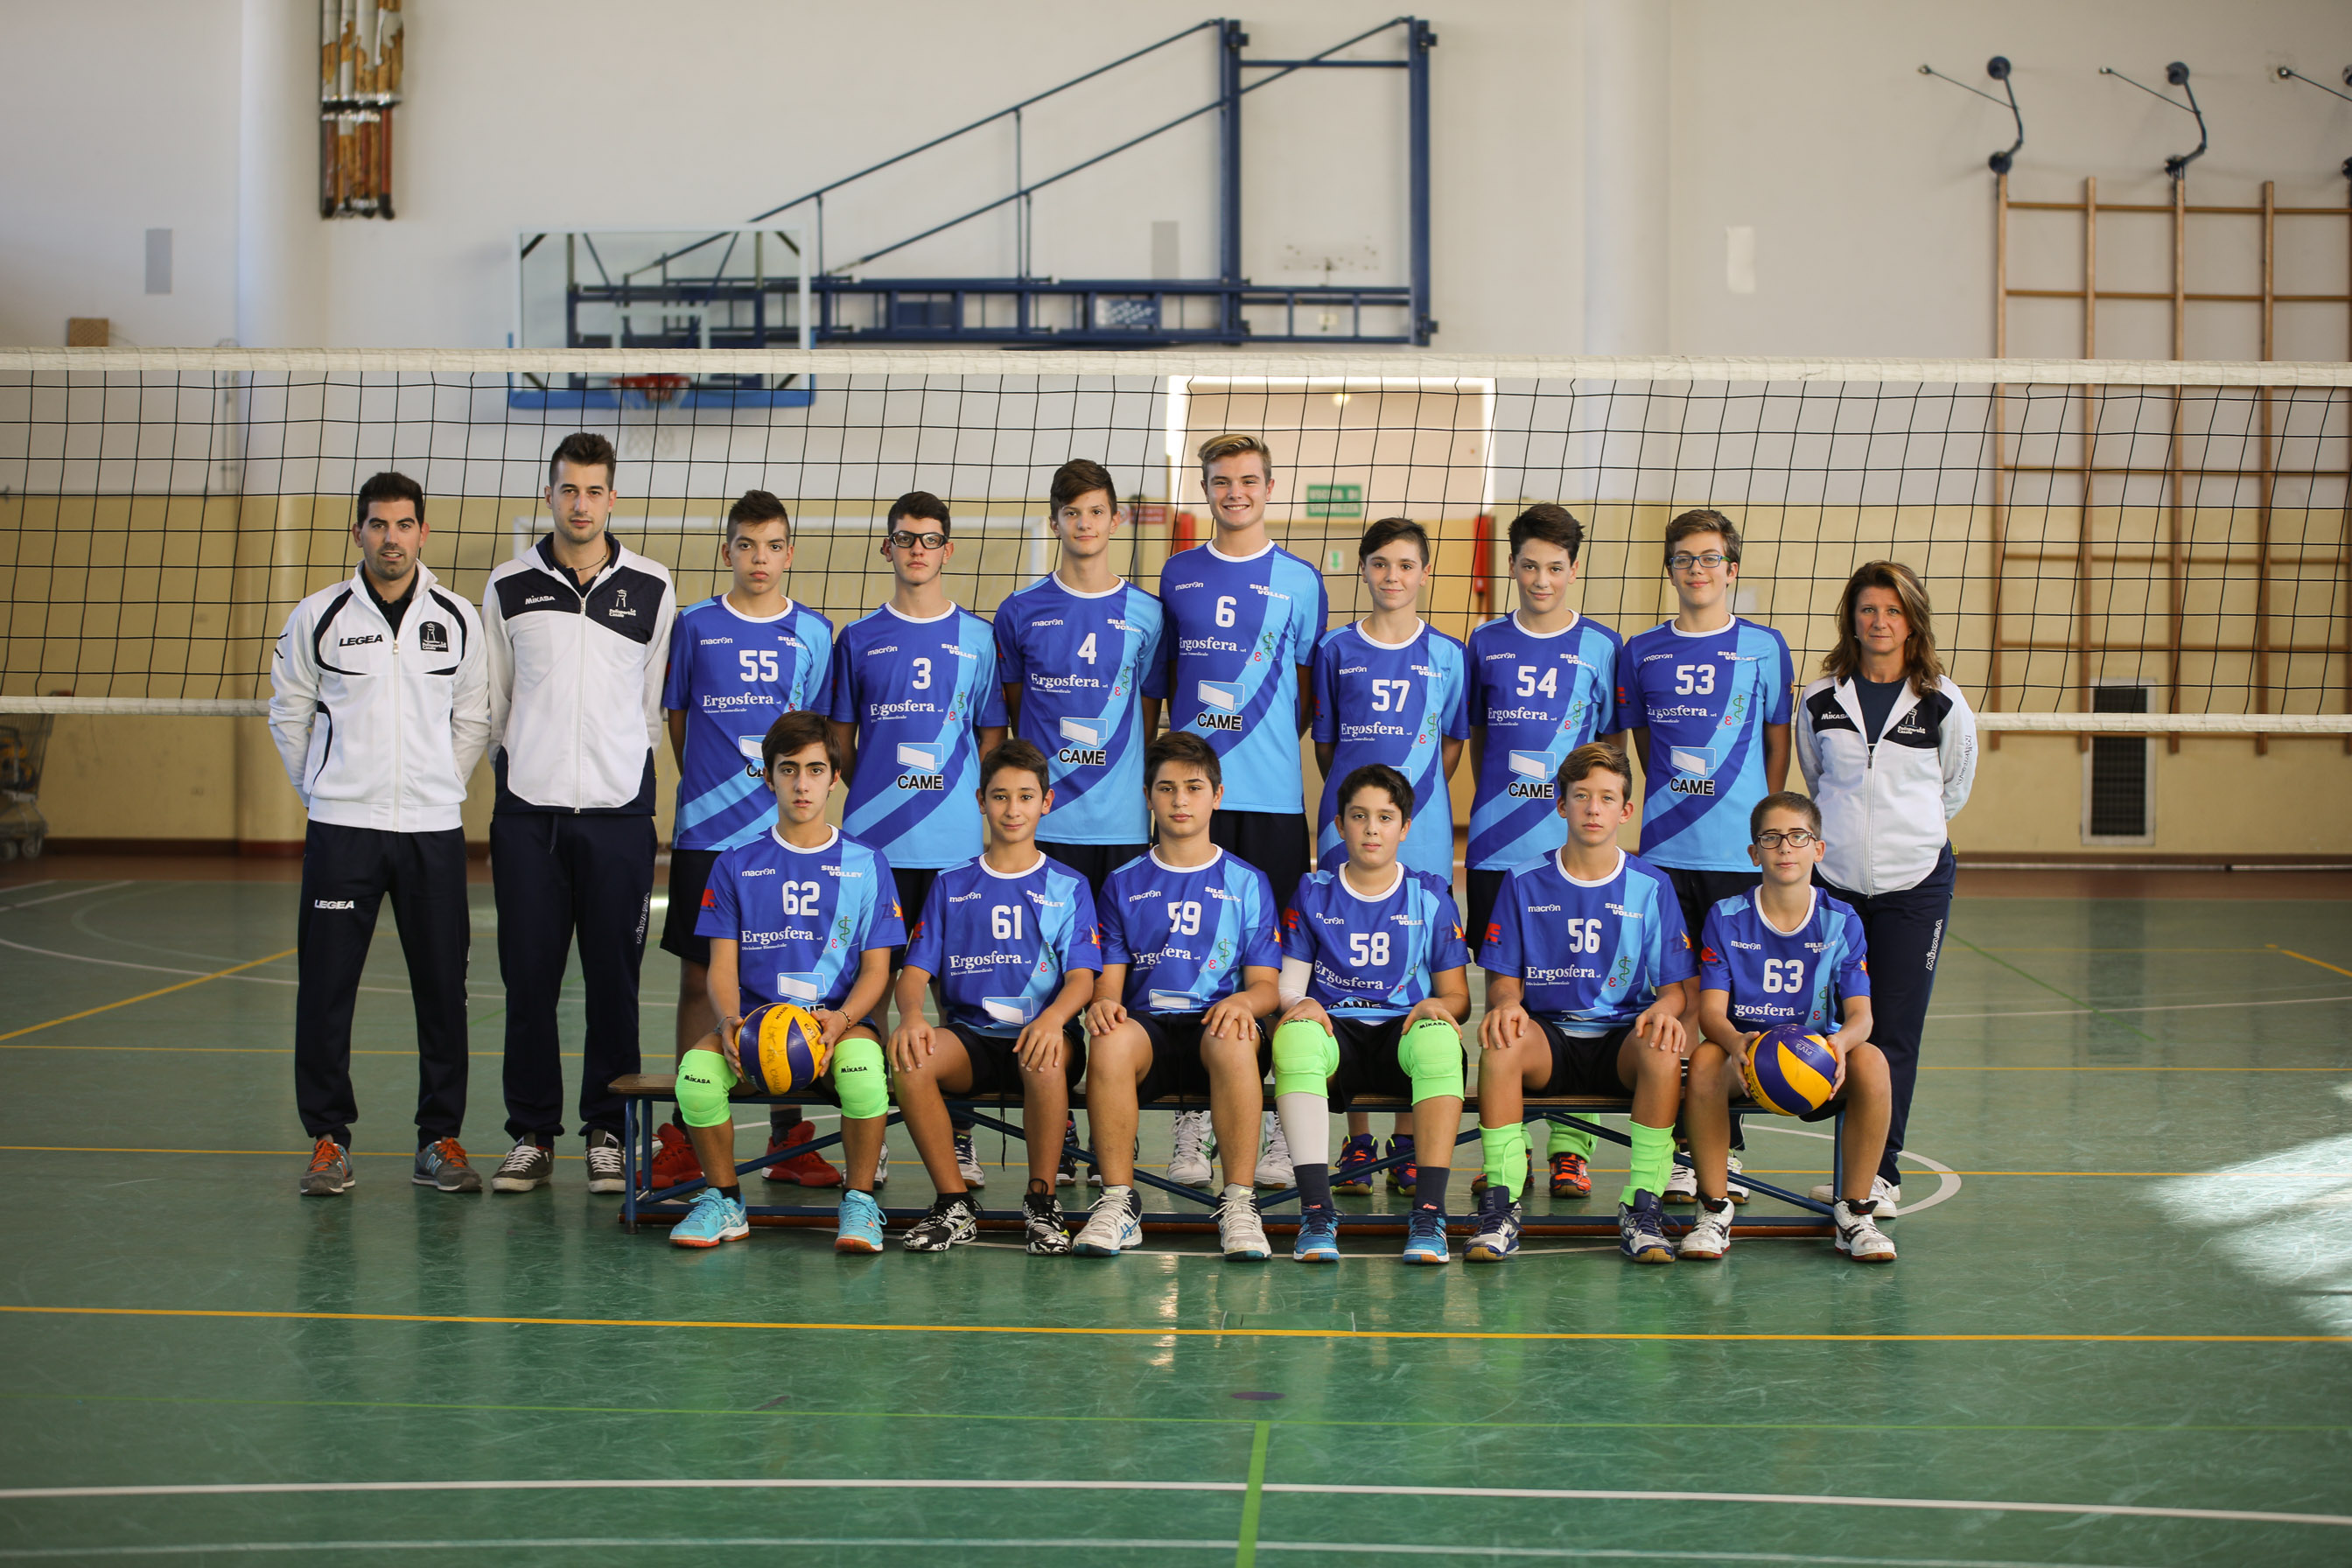 Sile Volley